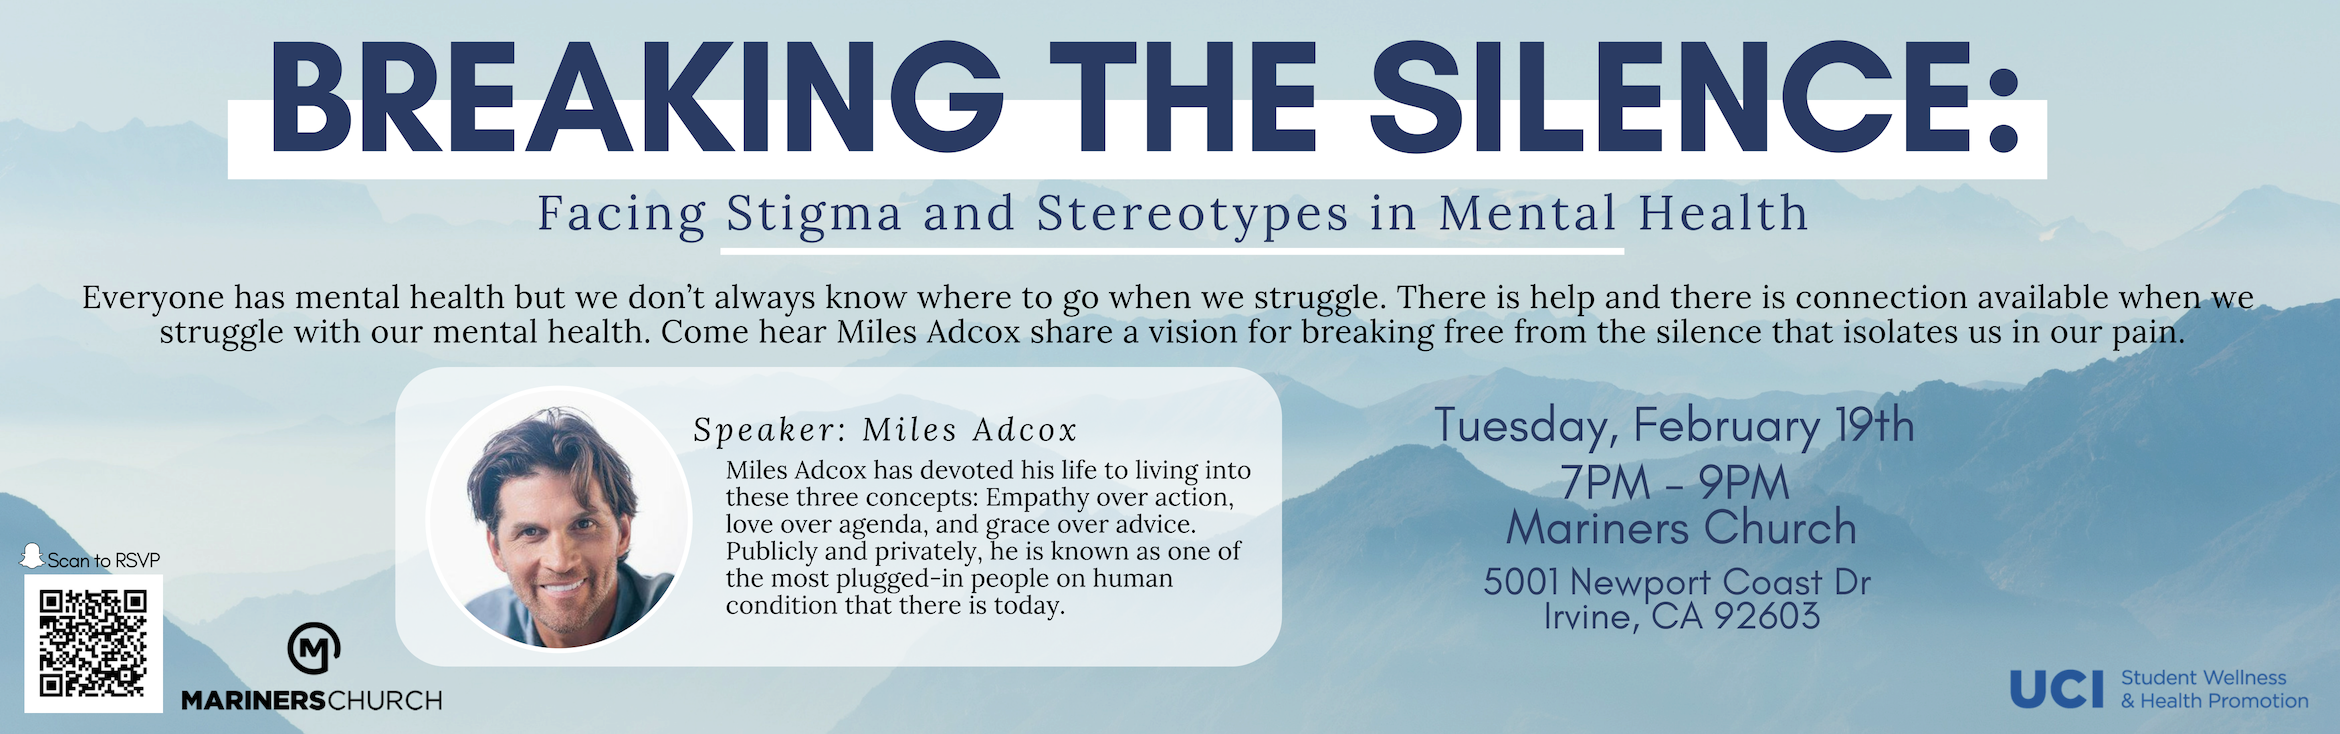 Breaking the Silence: Facing Stigma and Stereotypes in Mental Health.   Everyone has mental health but we don't always know where to go when we struggle.  This is help and there is connection available when we struggle with our mental health.  Come hear